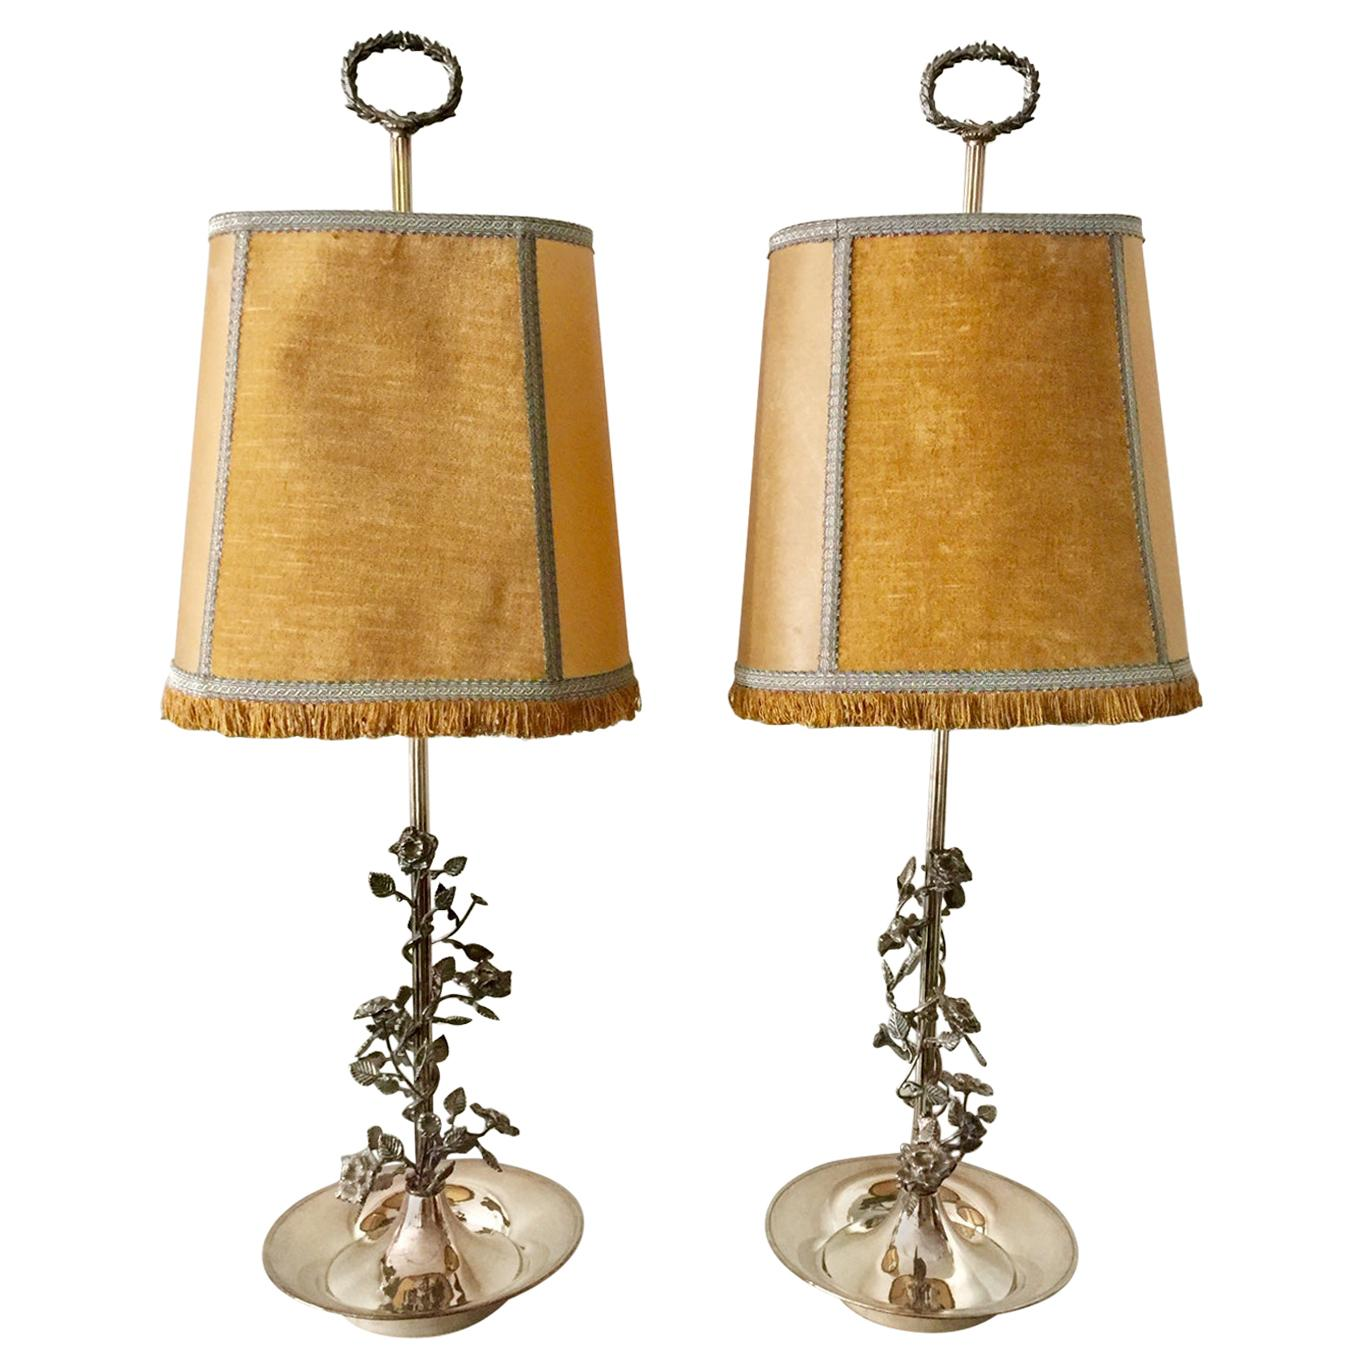 French Pair of Tall Silvered Bouillotte Lamps from Aix-en-Provence